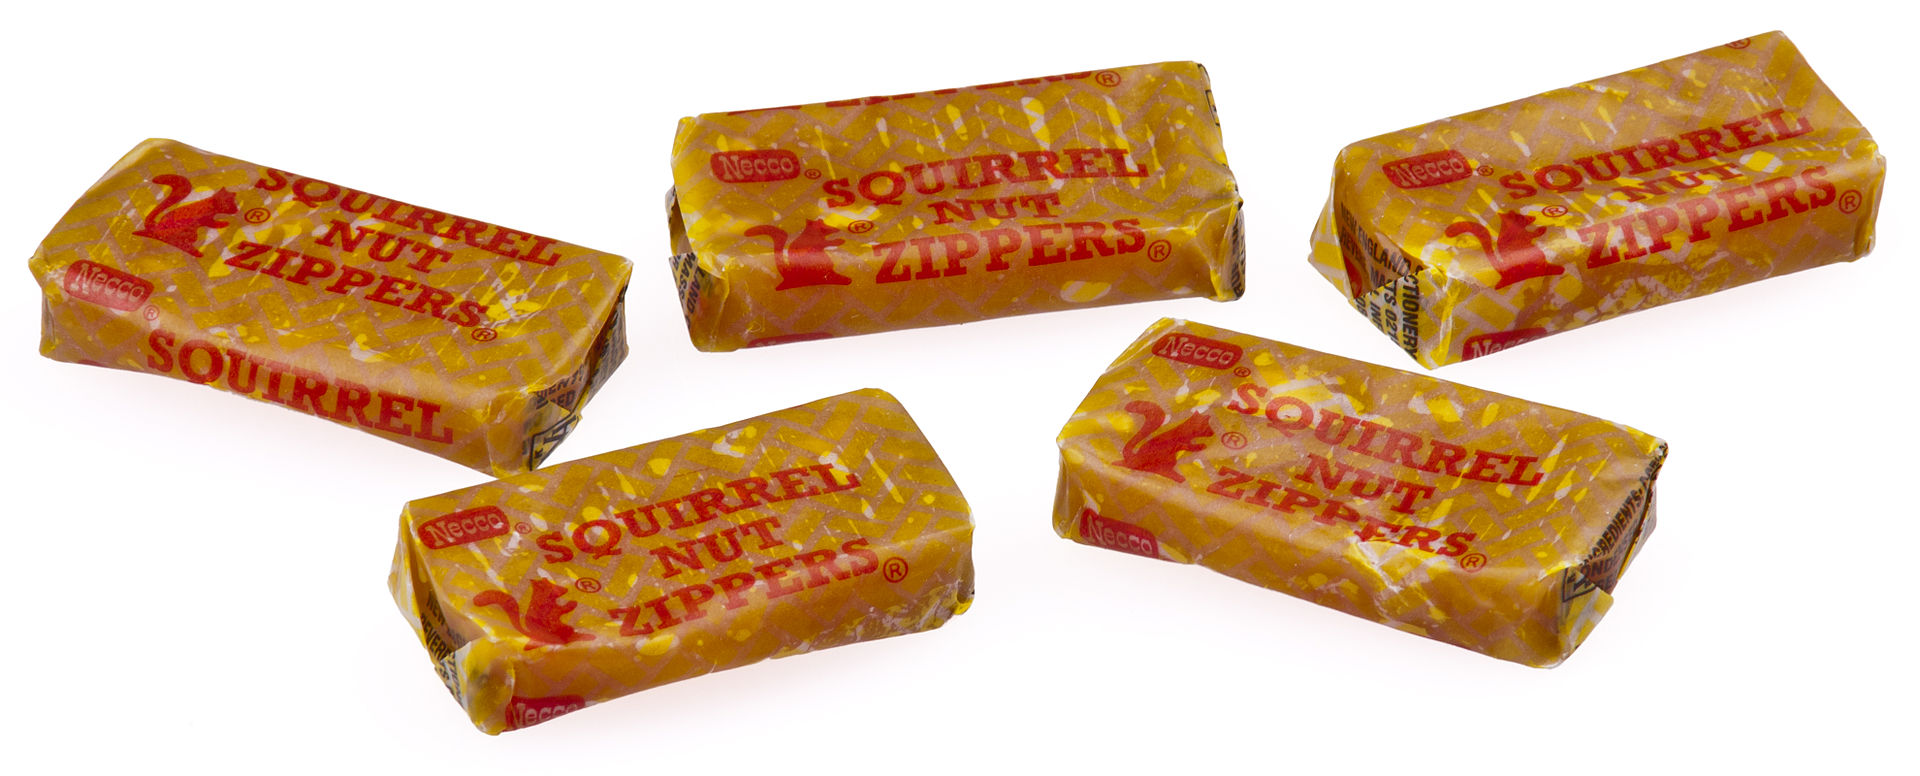 Chocolate Nut Candy Names